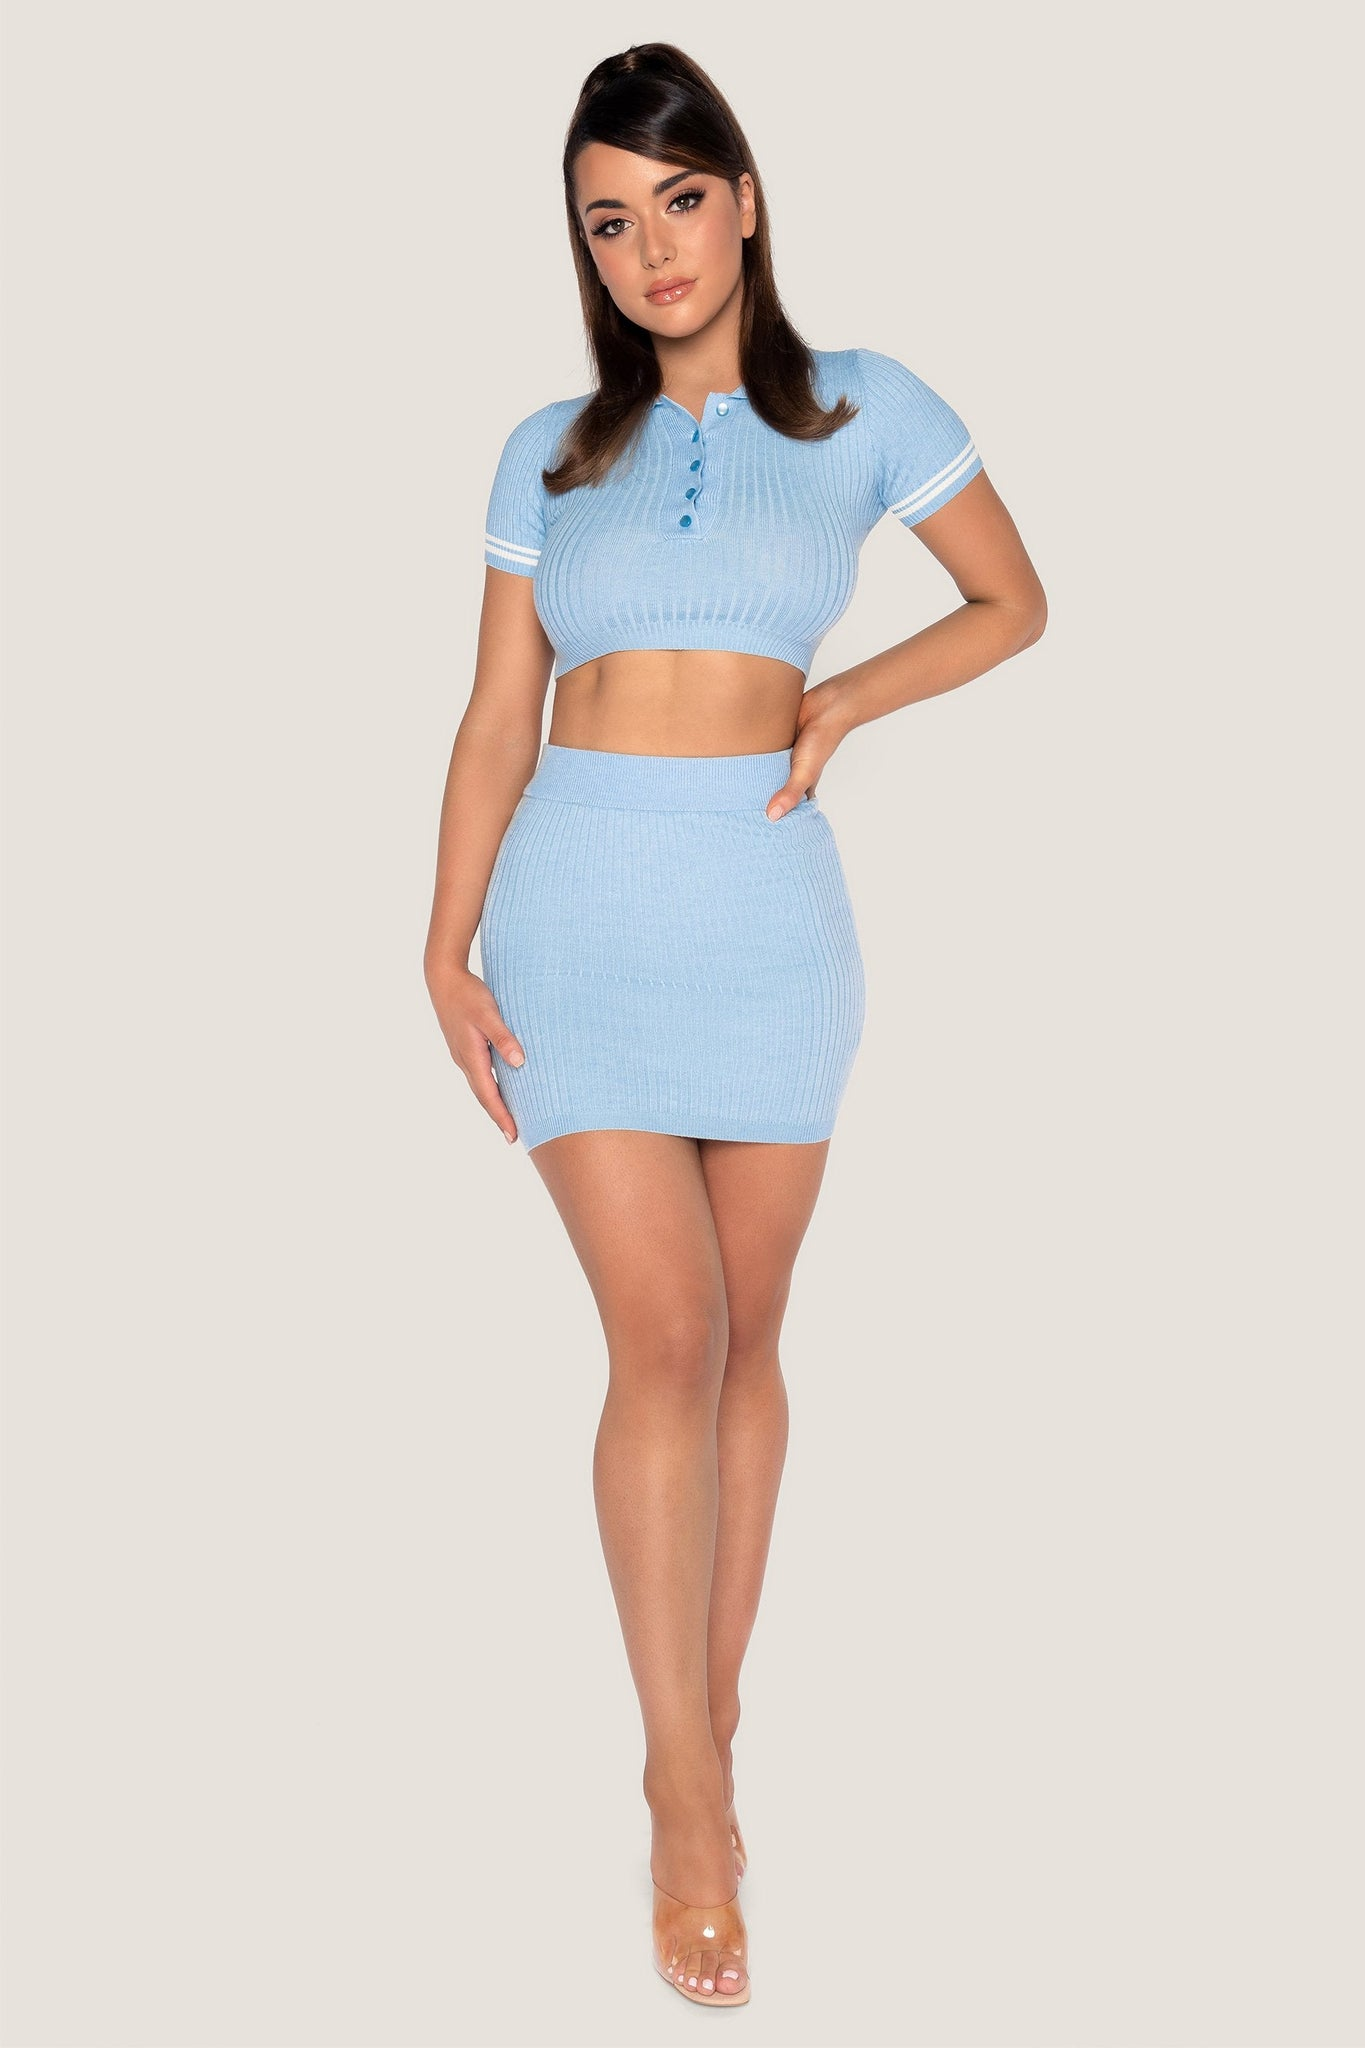 Cece Ribbed Mini Skirt - Baby Blue - MESHKI